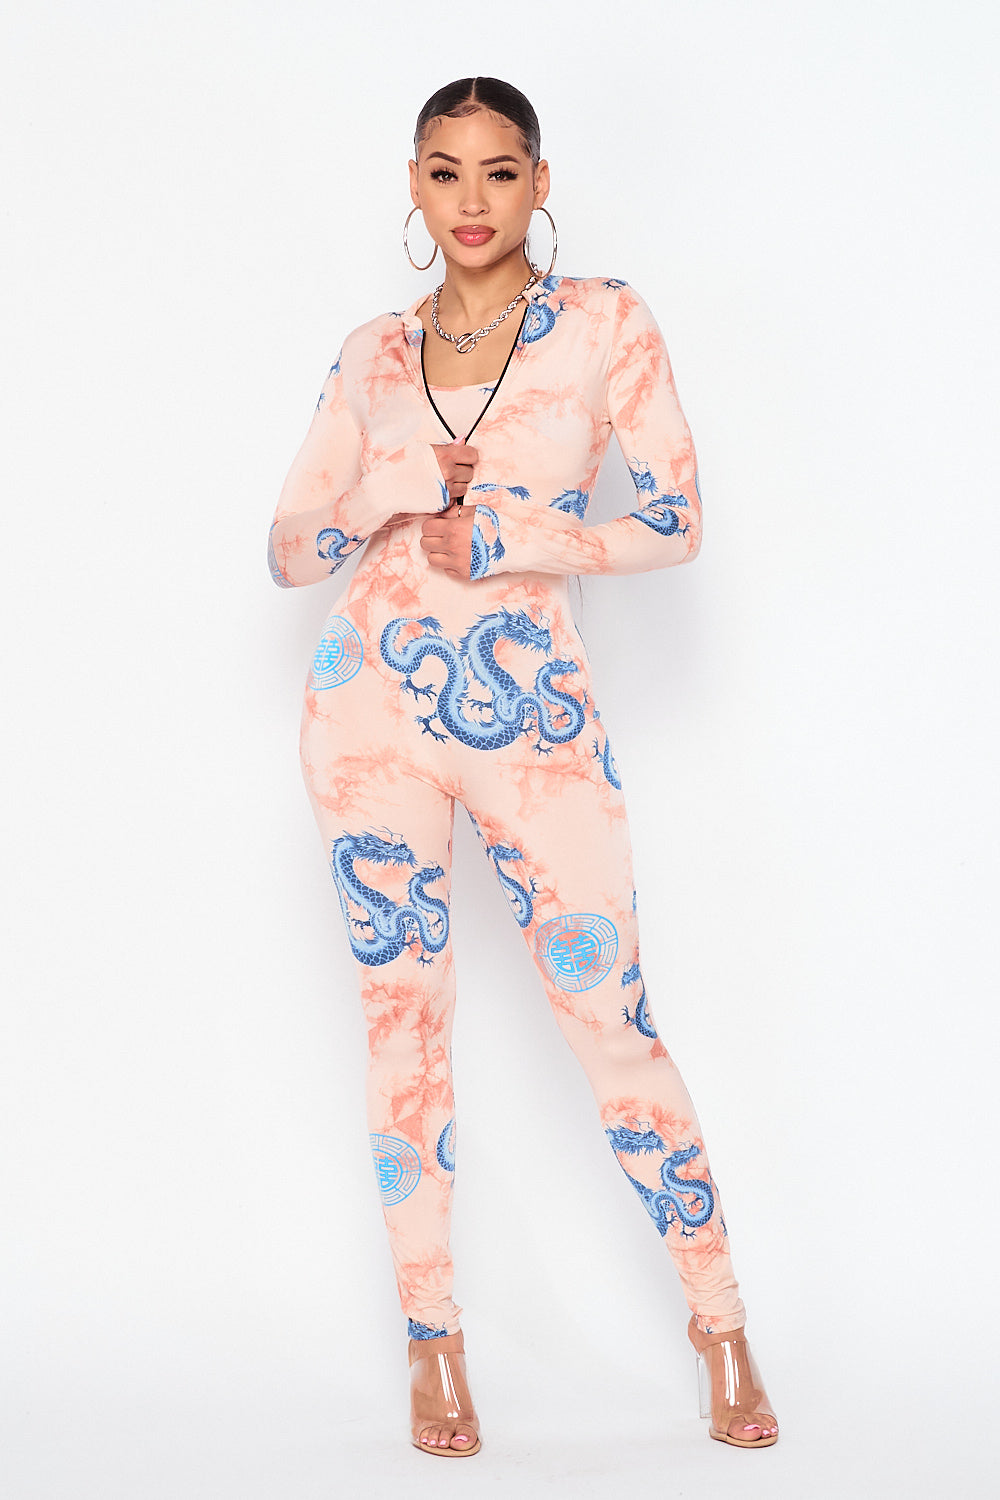 Dragon Print Spaghetti Strap Jumpsuit and Jacket Set - Fashion House USA